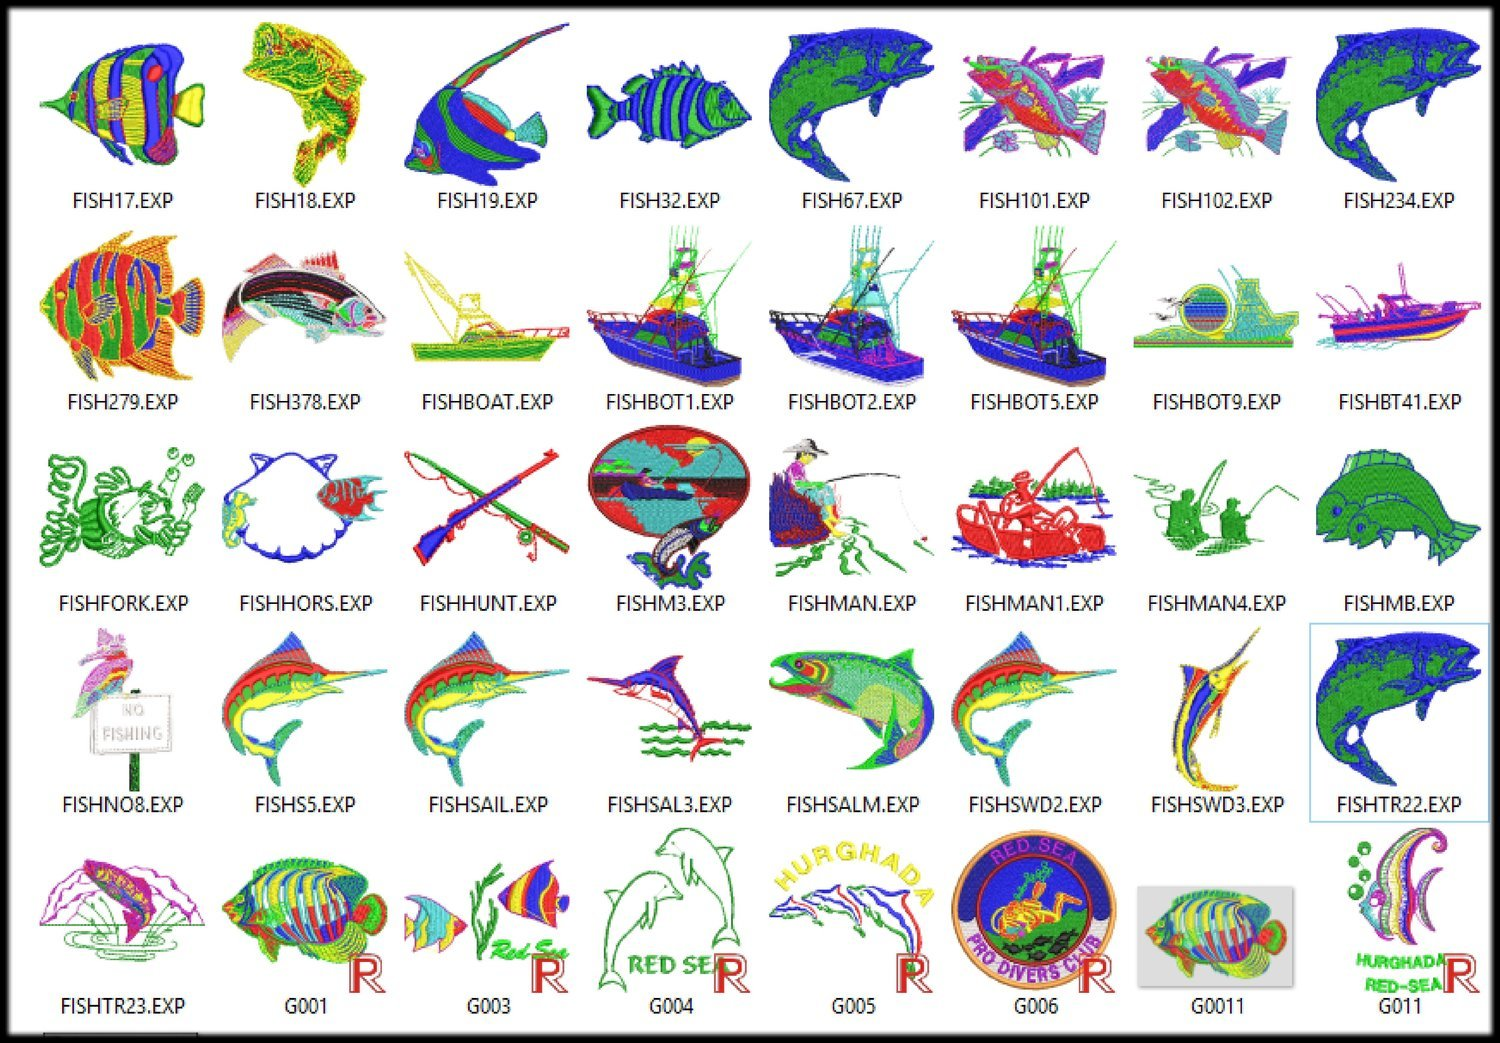 80 Embroidery Fish Digitized Designs File to run Embroidery Machines in any Format